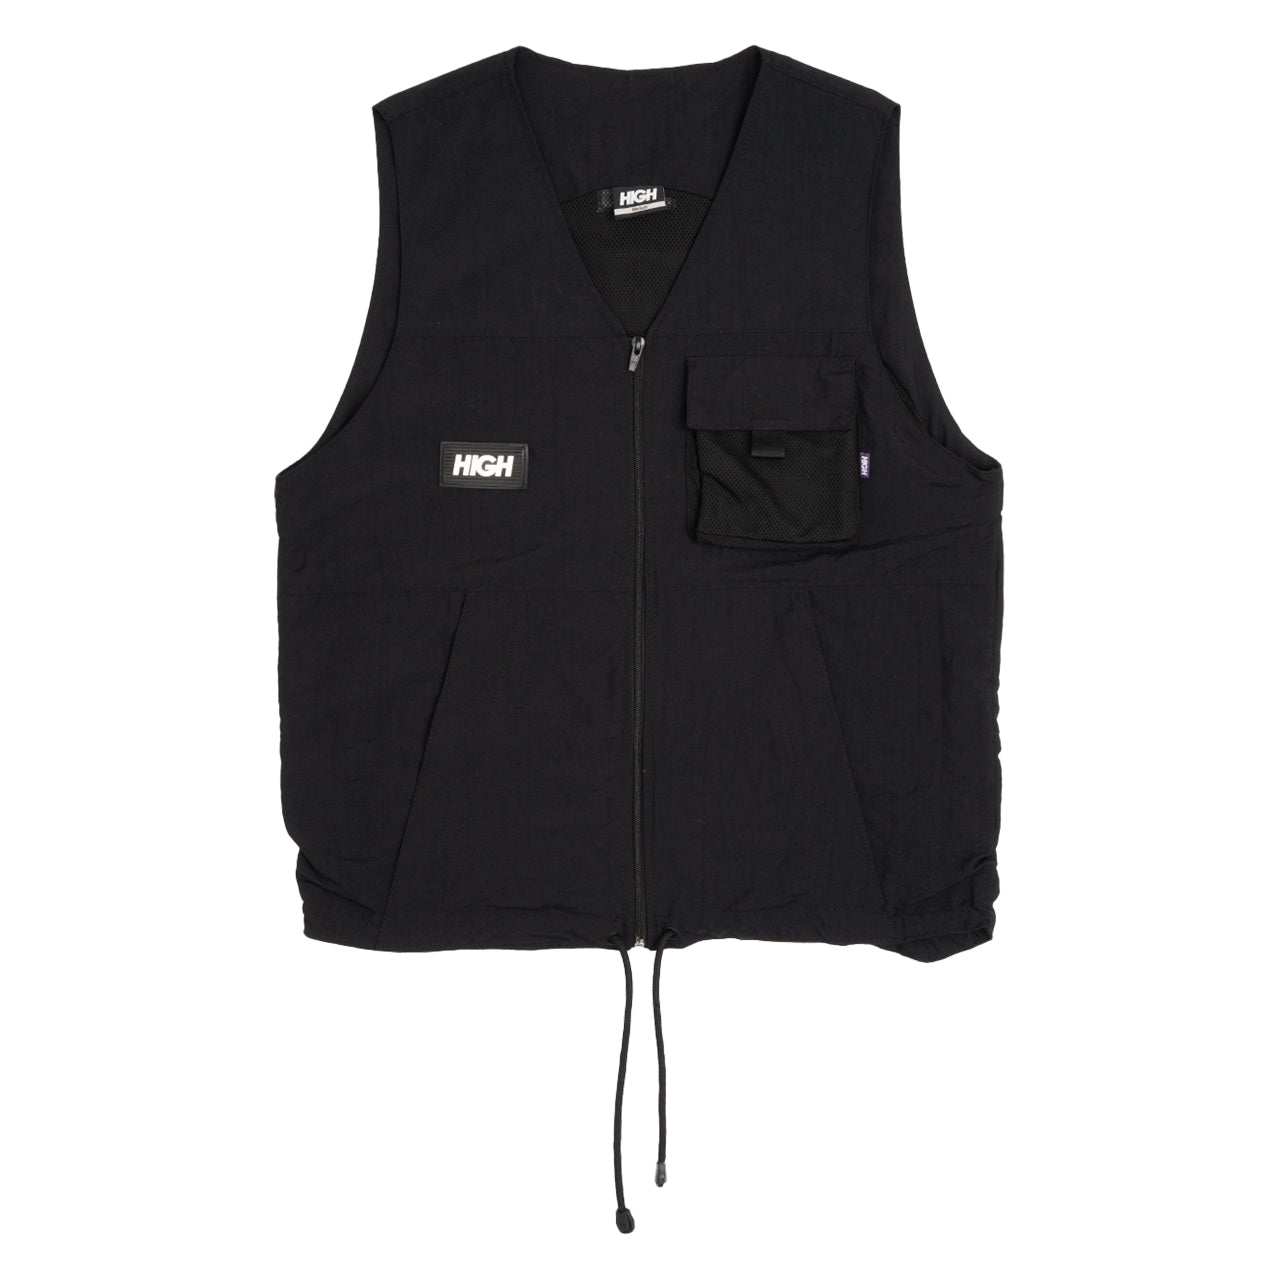 Kangaroo High Vest Black